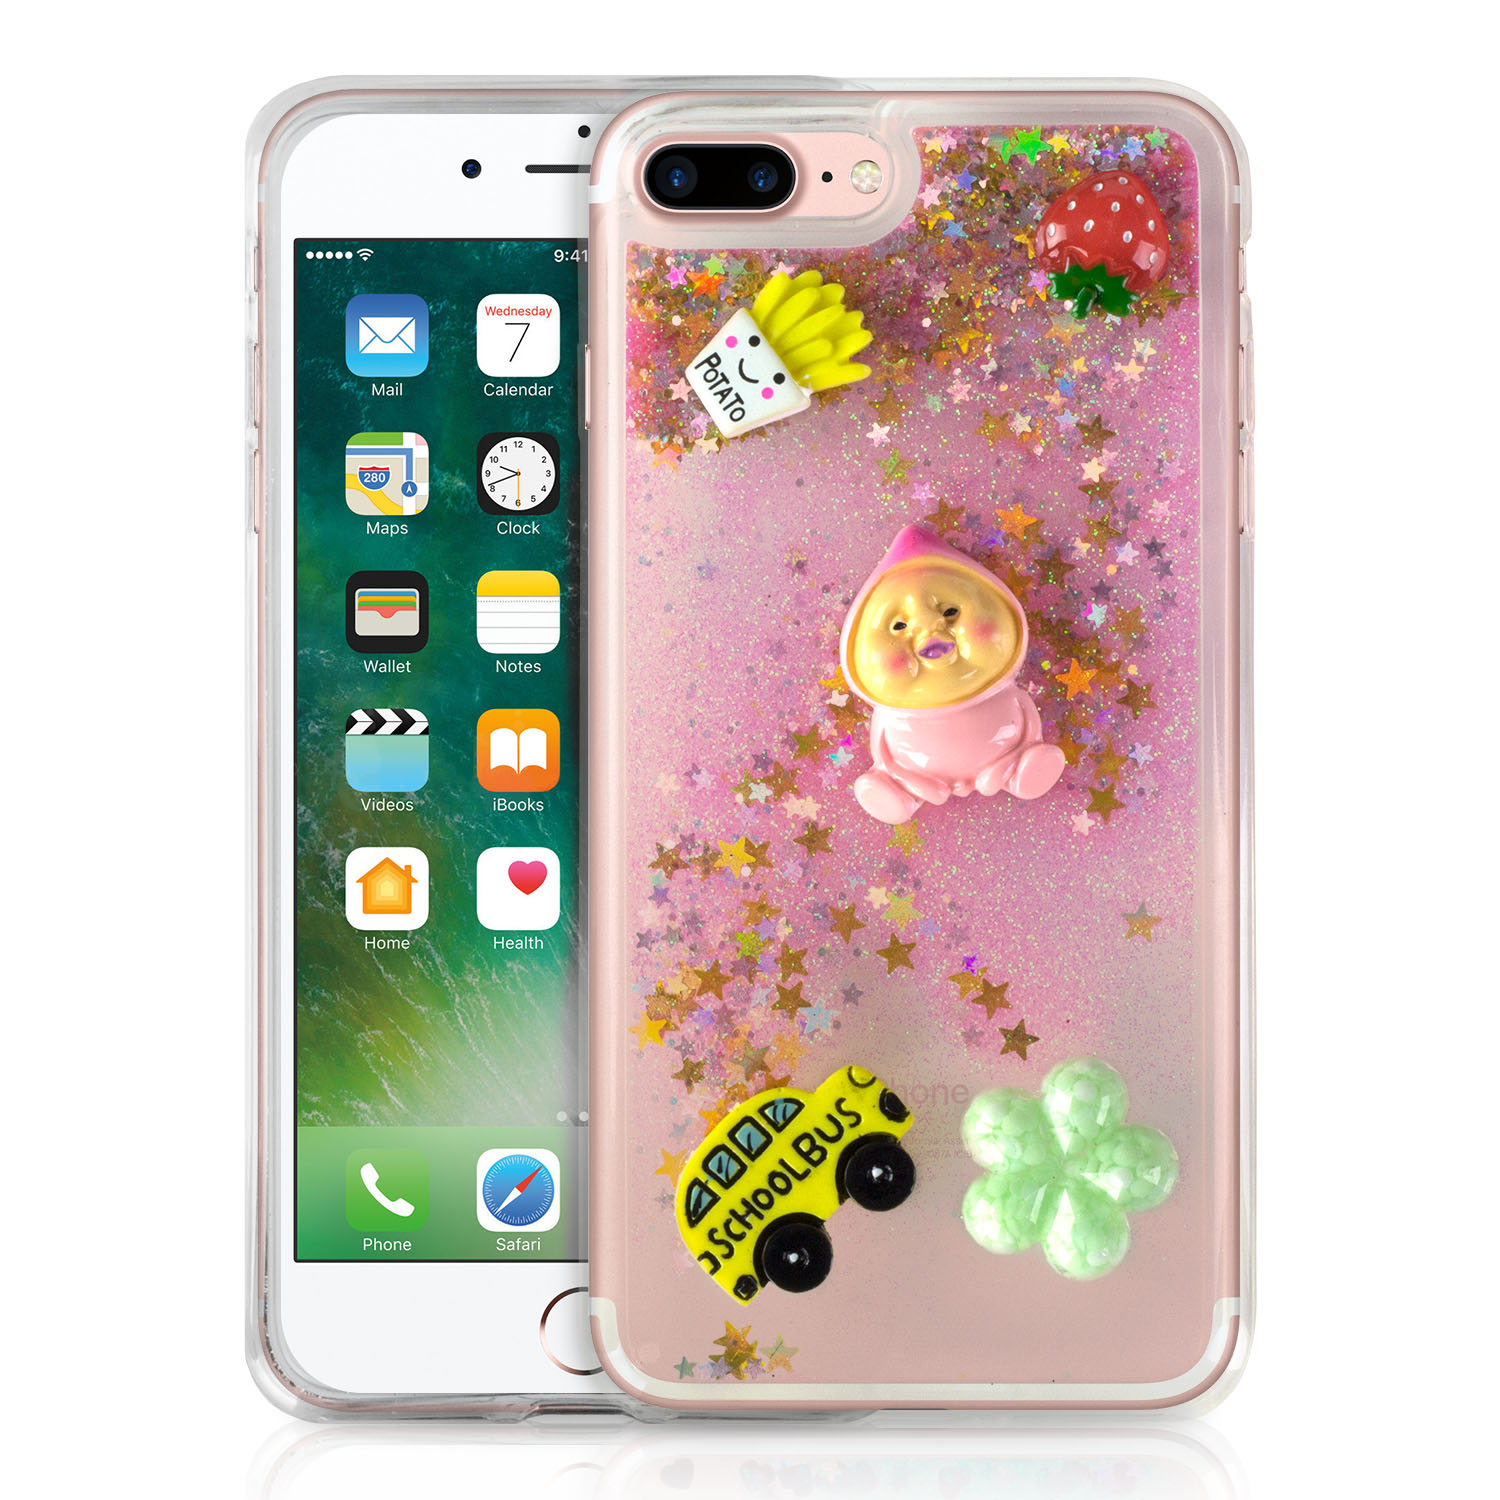 Sojitek Flowing Gold Stars Luxury Sparkling Glitter Cute Strawberry / French fries / Baby / Schoolbus / Cookies Clear Protective Liquid Case for iPhone 7 Plus & iPhone 8 Plus